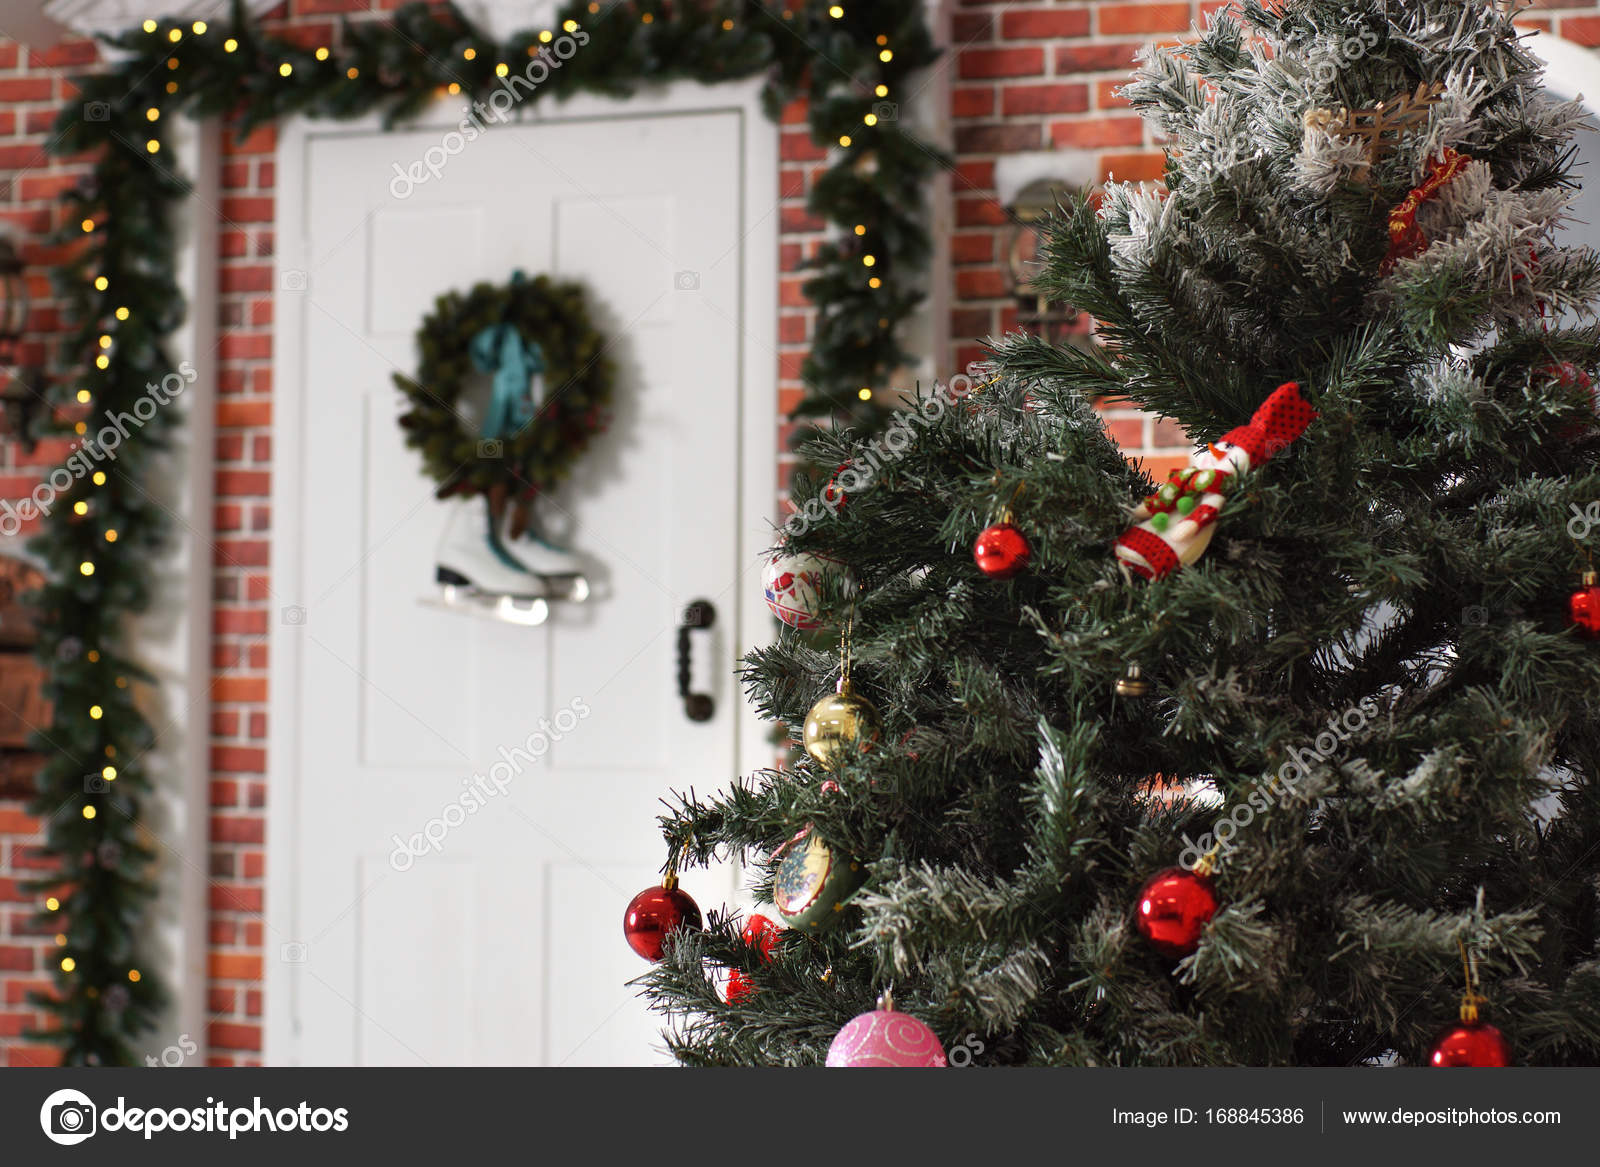 a decorated christmas tree stands in the courtyard near the front door stock photo - Decorative Christmas Tree Stands